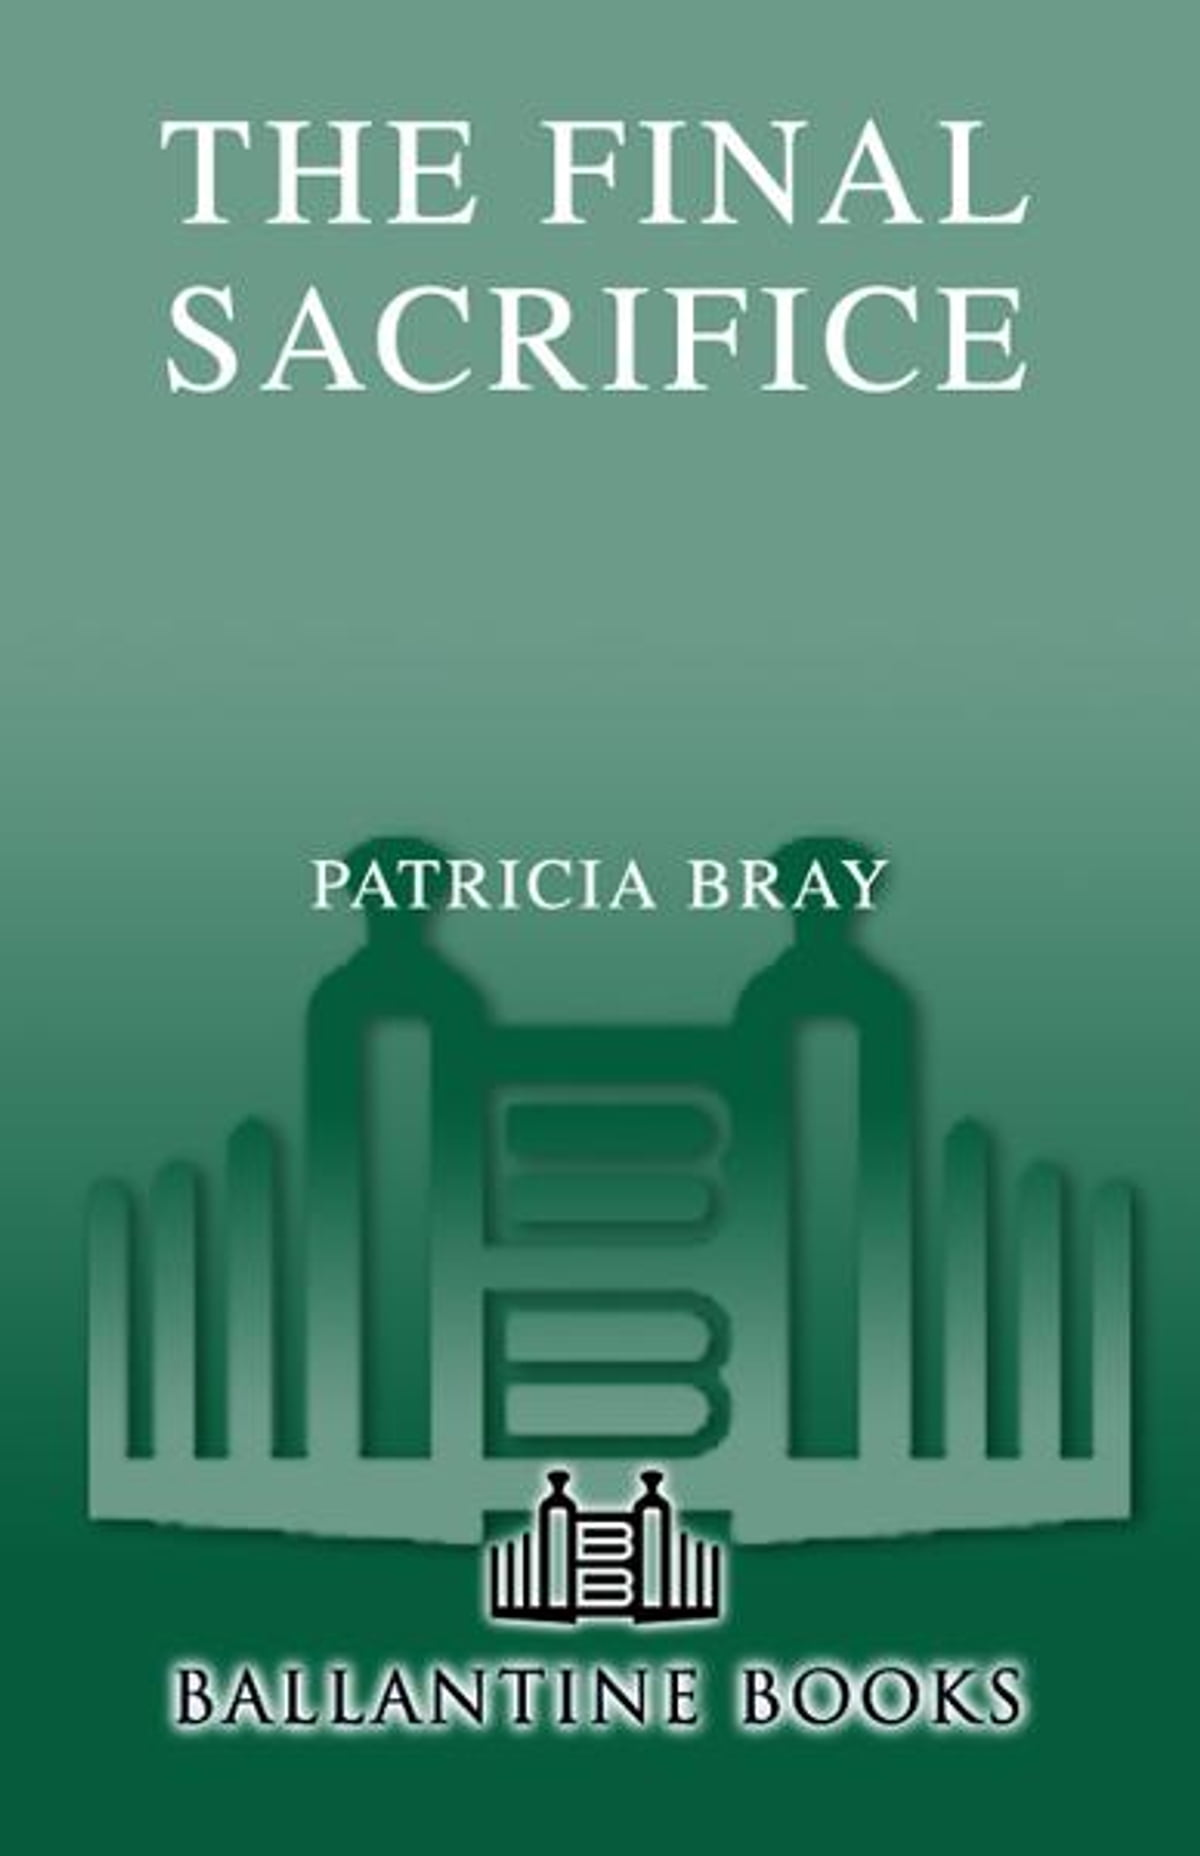 The final sacrifice ebook by patricia bray 9780553905175 the final sacrifice ebook by patricia bray 9780553905175 rakuten kobo fandeluxe Document